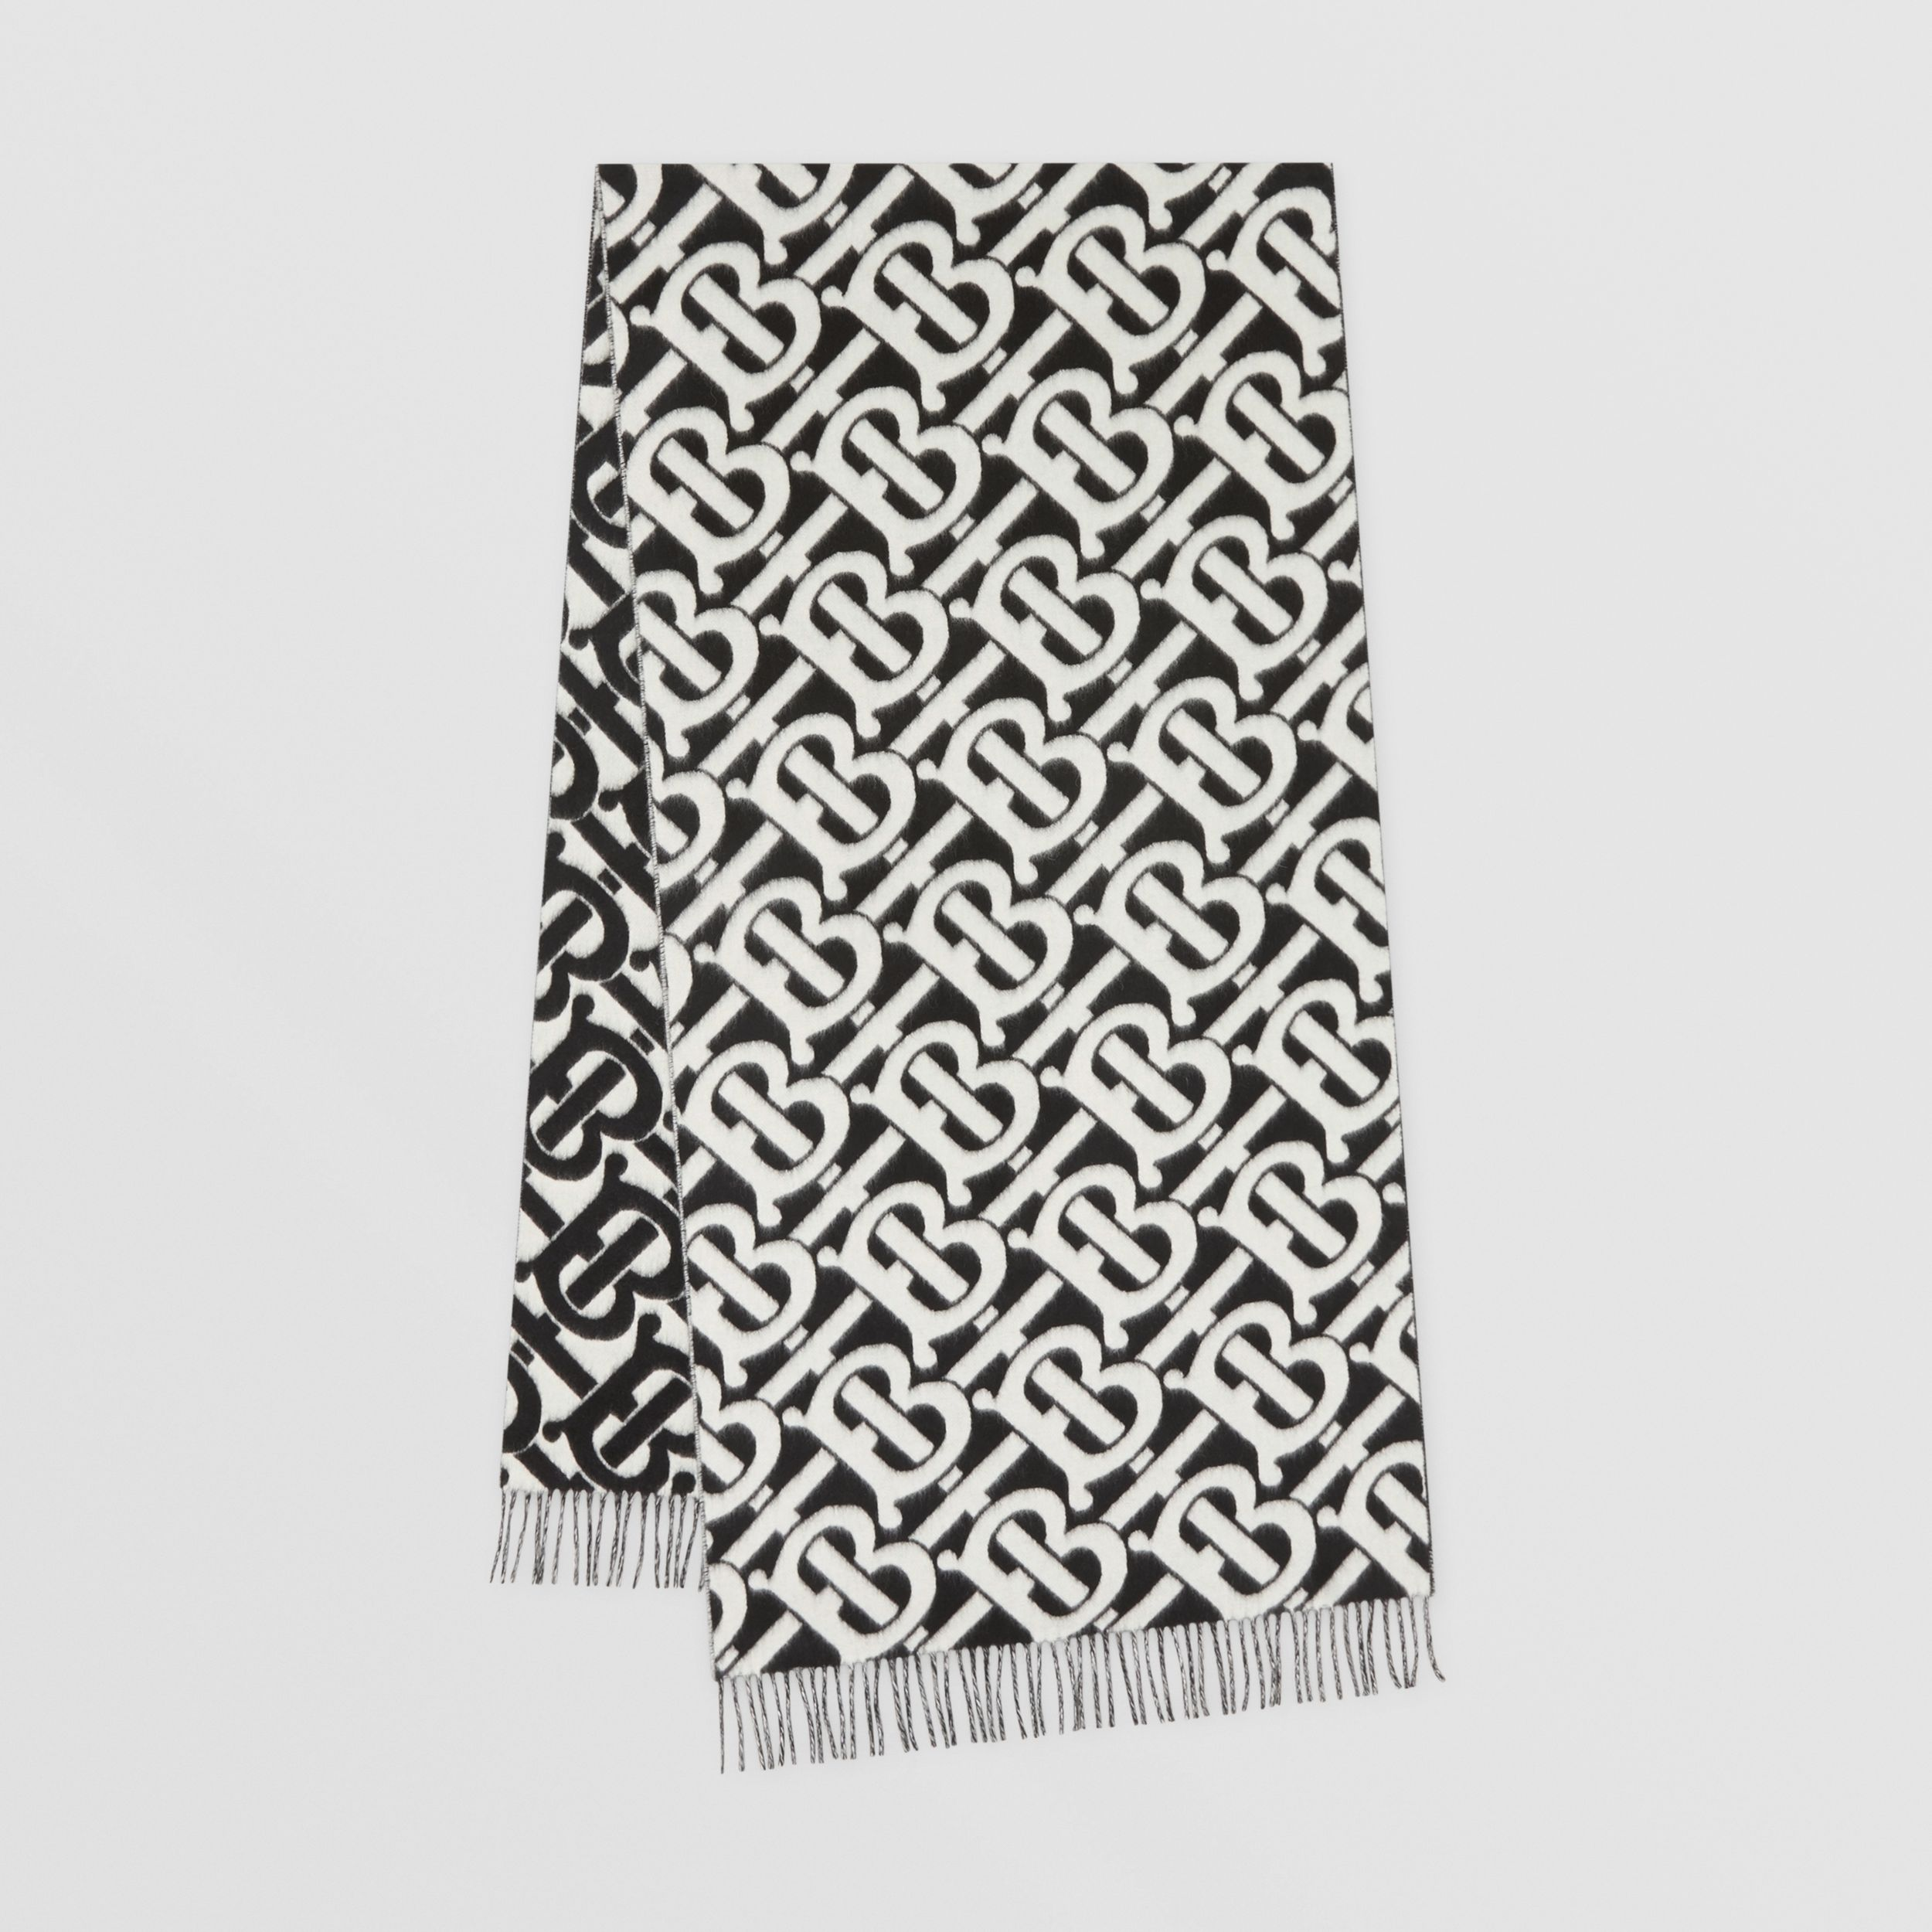 Monogram Cashmere Jacquard Scarf in Black/white | Burberry United Kingdom - 1